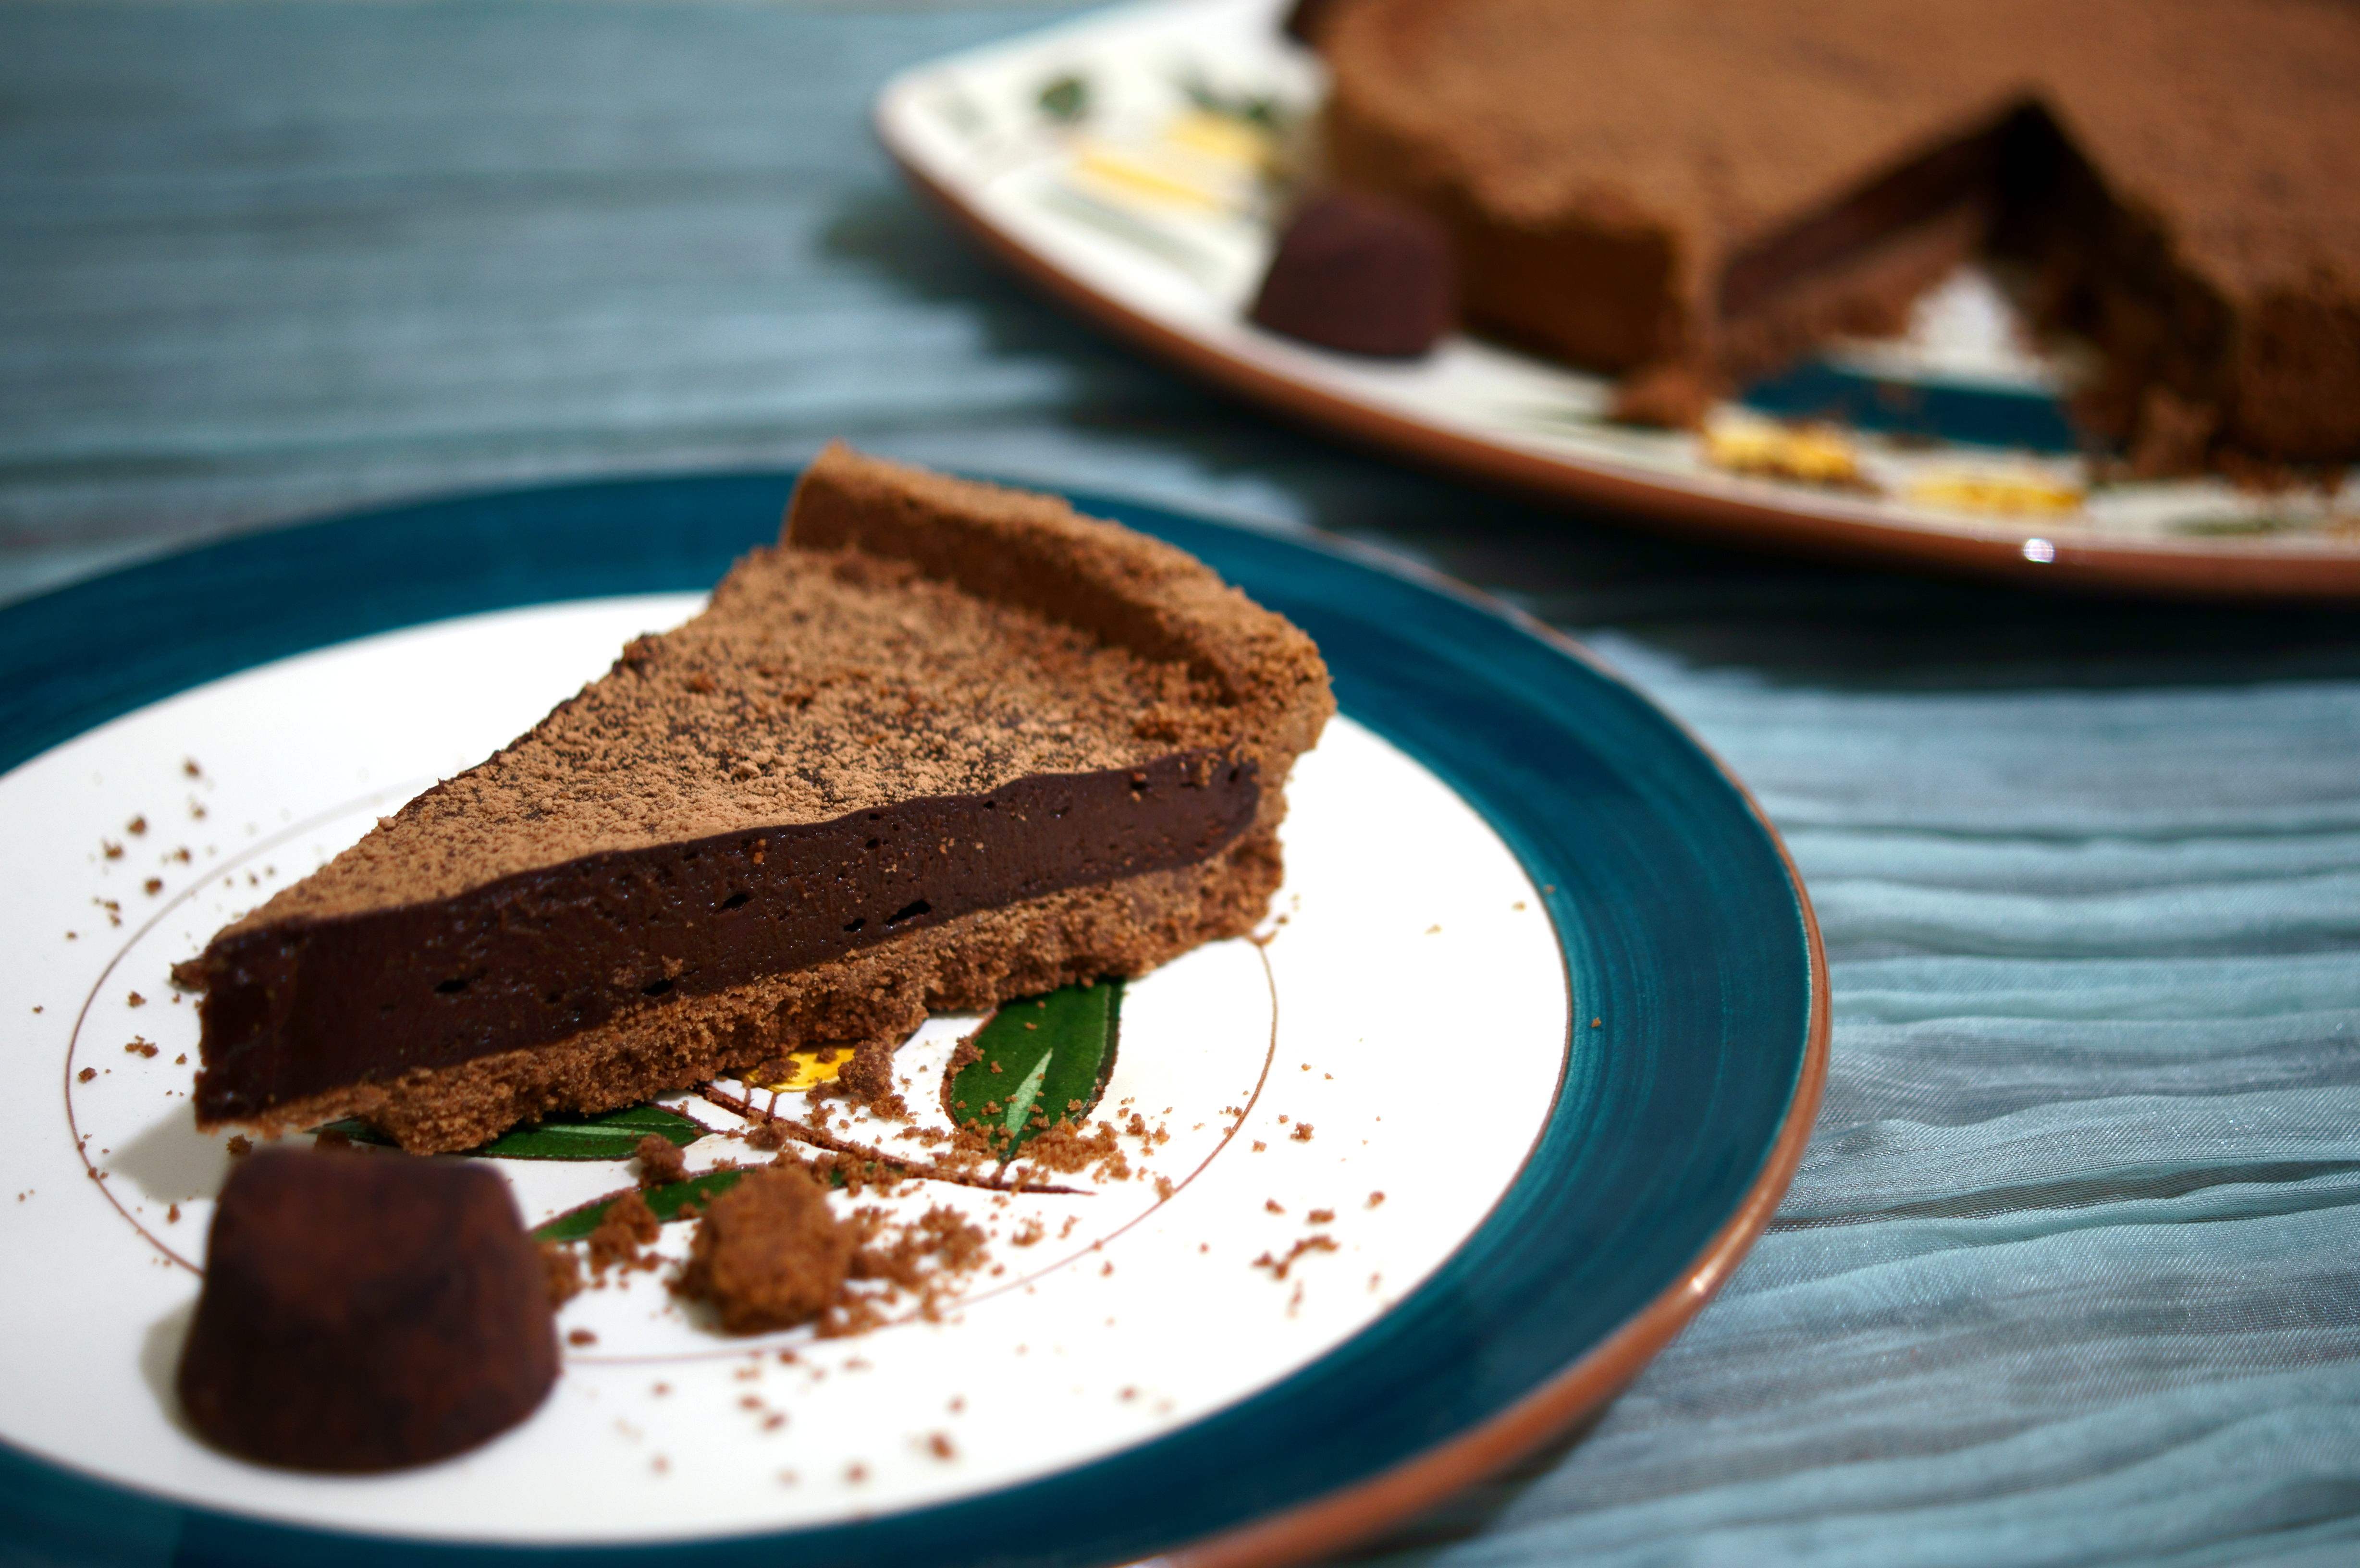 Chocolate Truffle Tart Dusted with Cocoa Powder